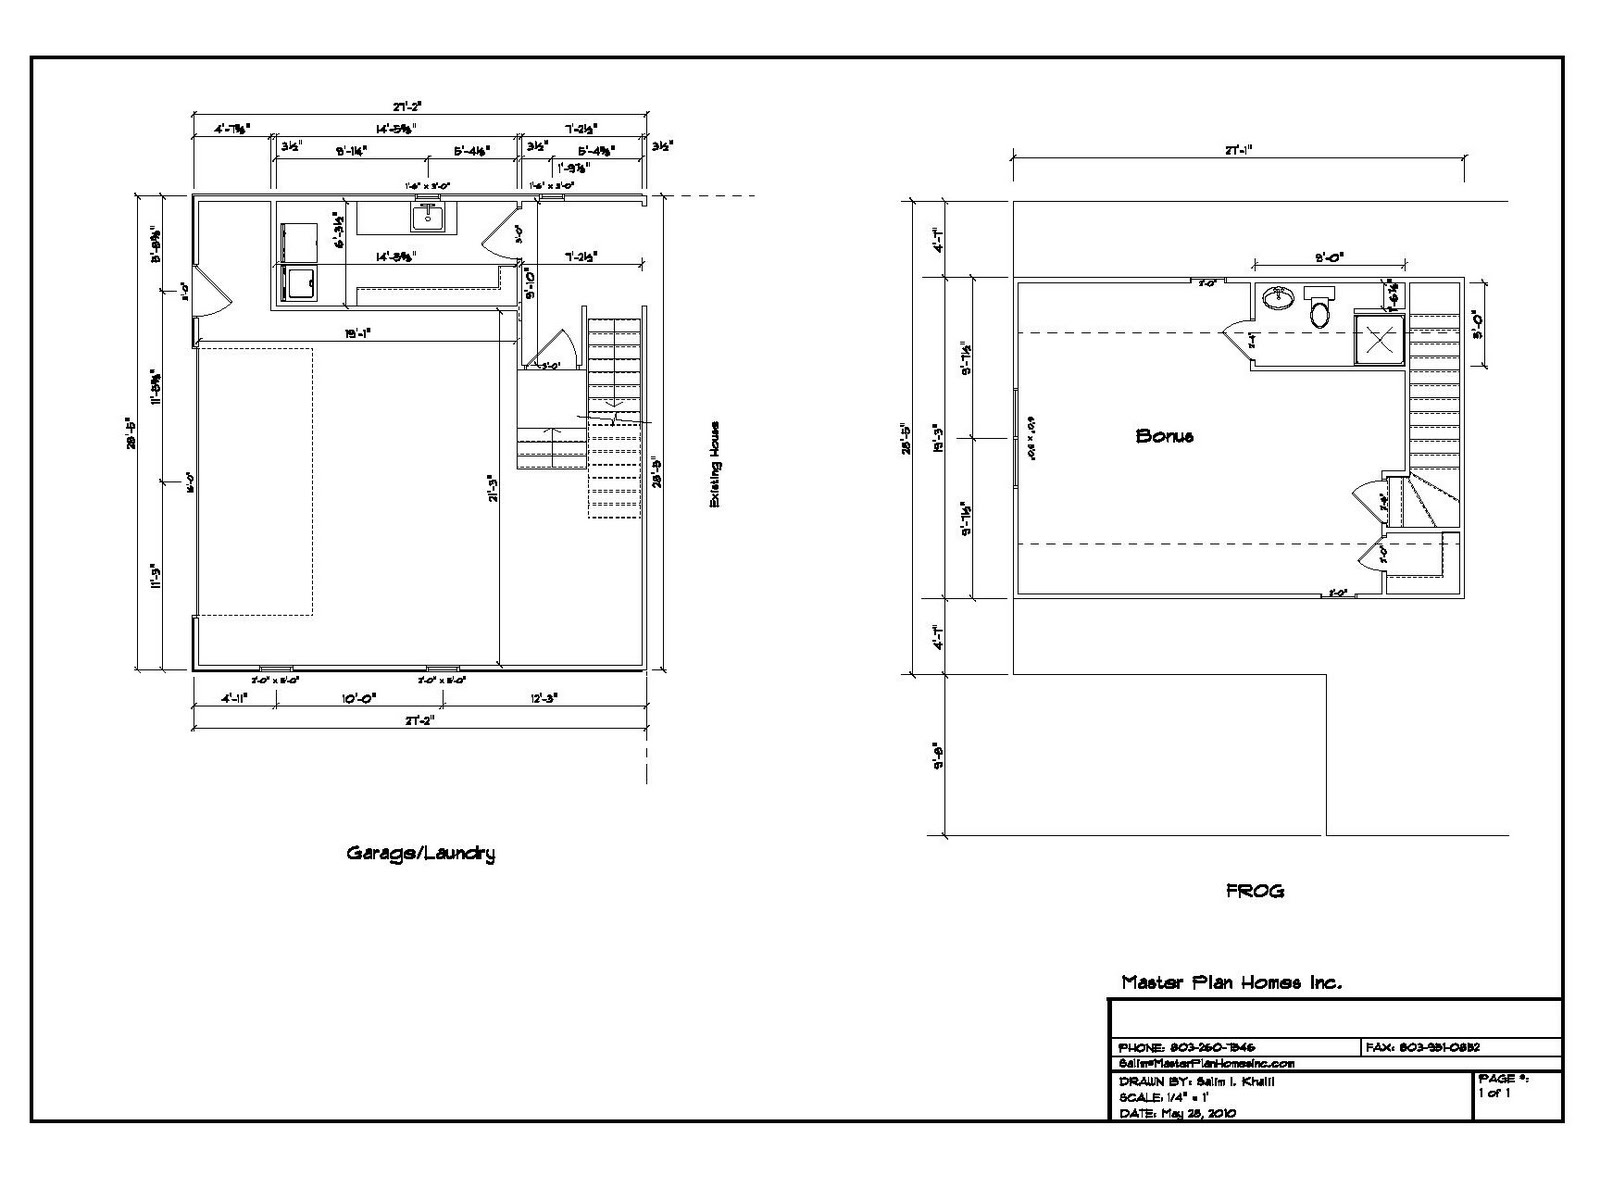 Master plan homes inc blog garage laundry room over for 2 car garage addition plans